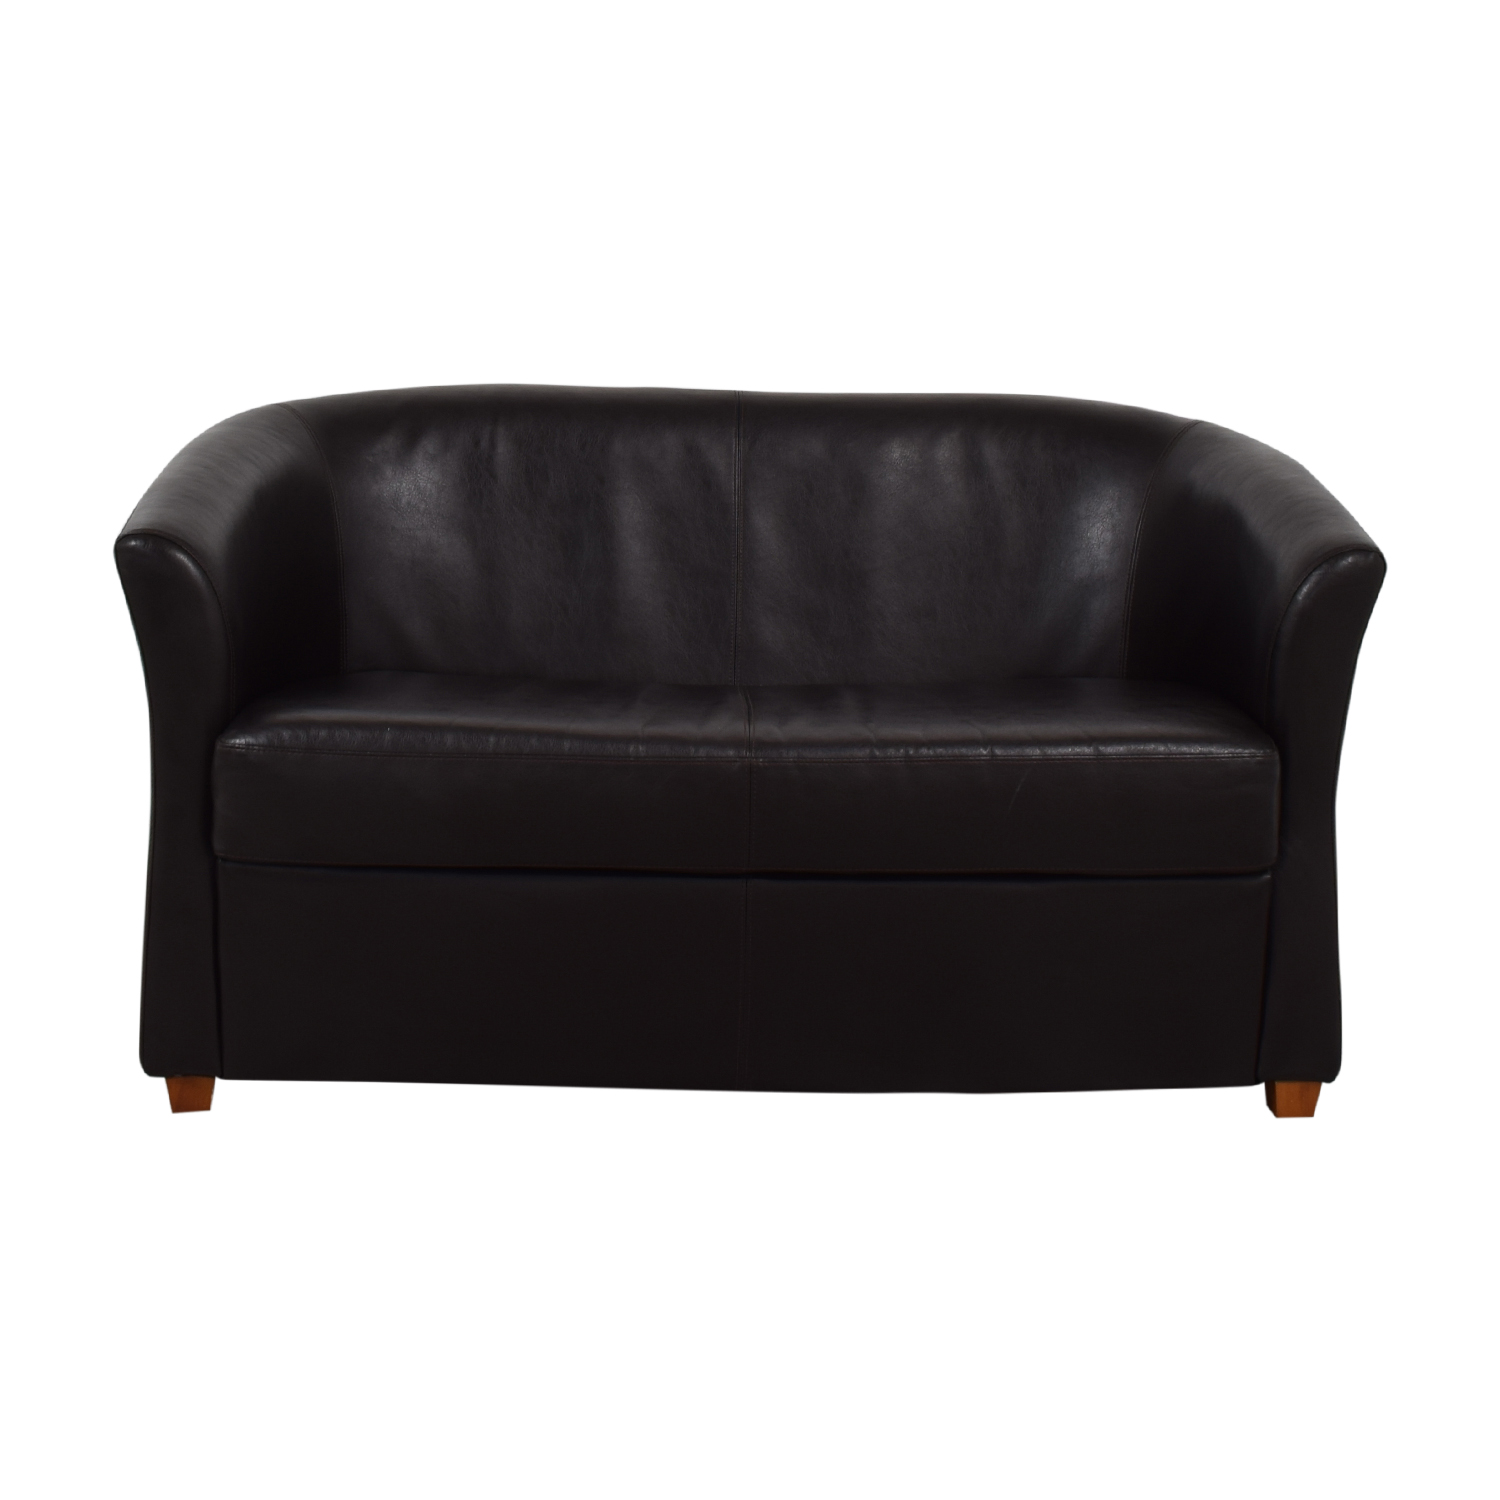 Pier 1 Pier 1 Isaac Collection Loveseat Sofas